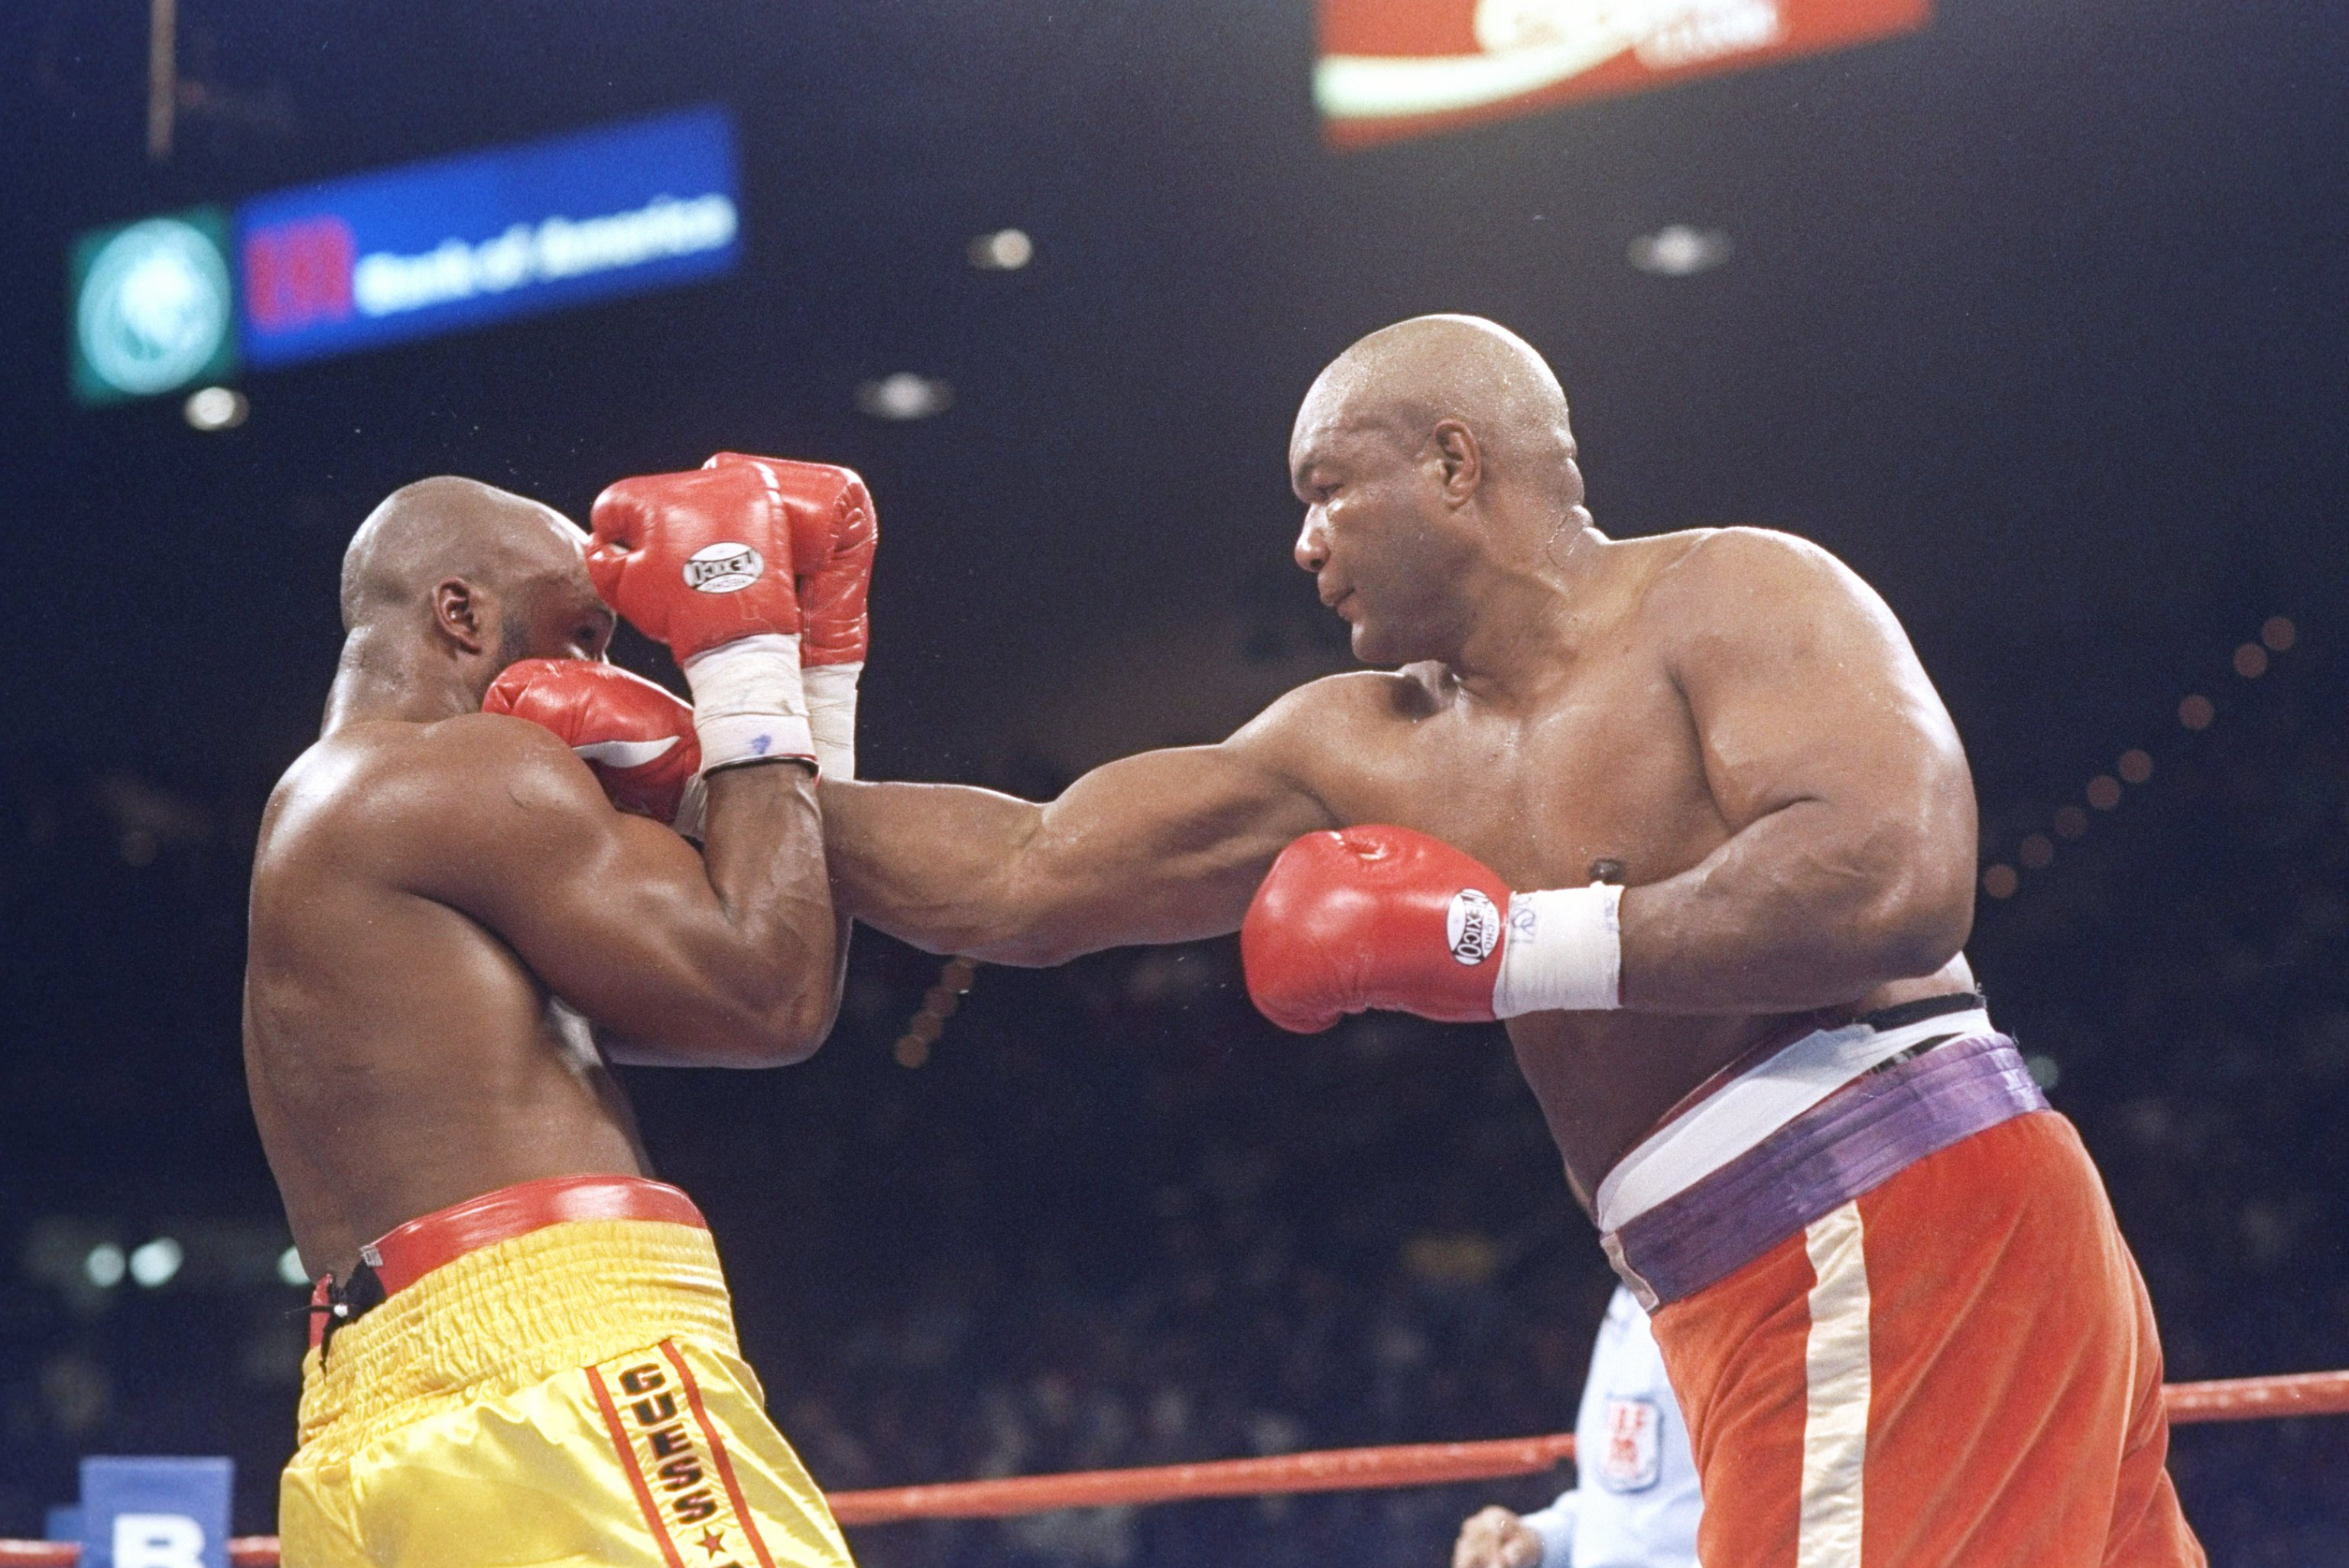 George Foreman (in the red trunks on the right) puts on a show against the 26-year-old world heavyweight champion Michael Mooer (in the yellow trunks) to win the heavyweight championship of the world at a record age of 45.